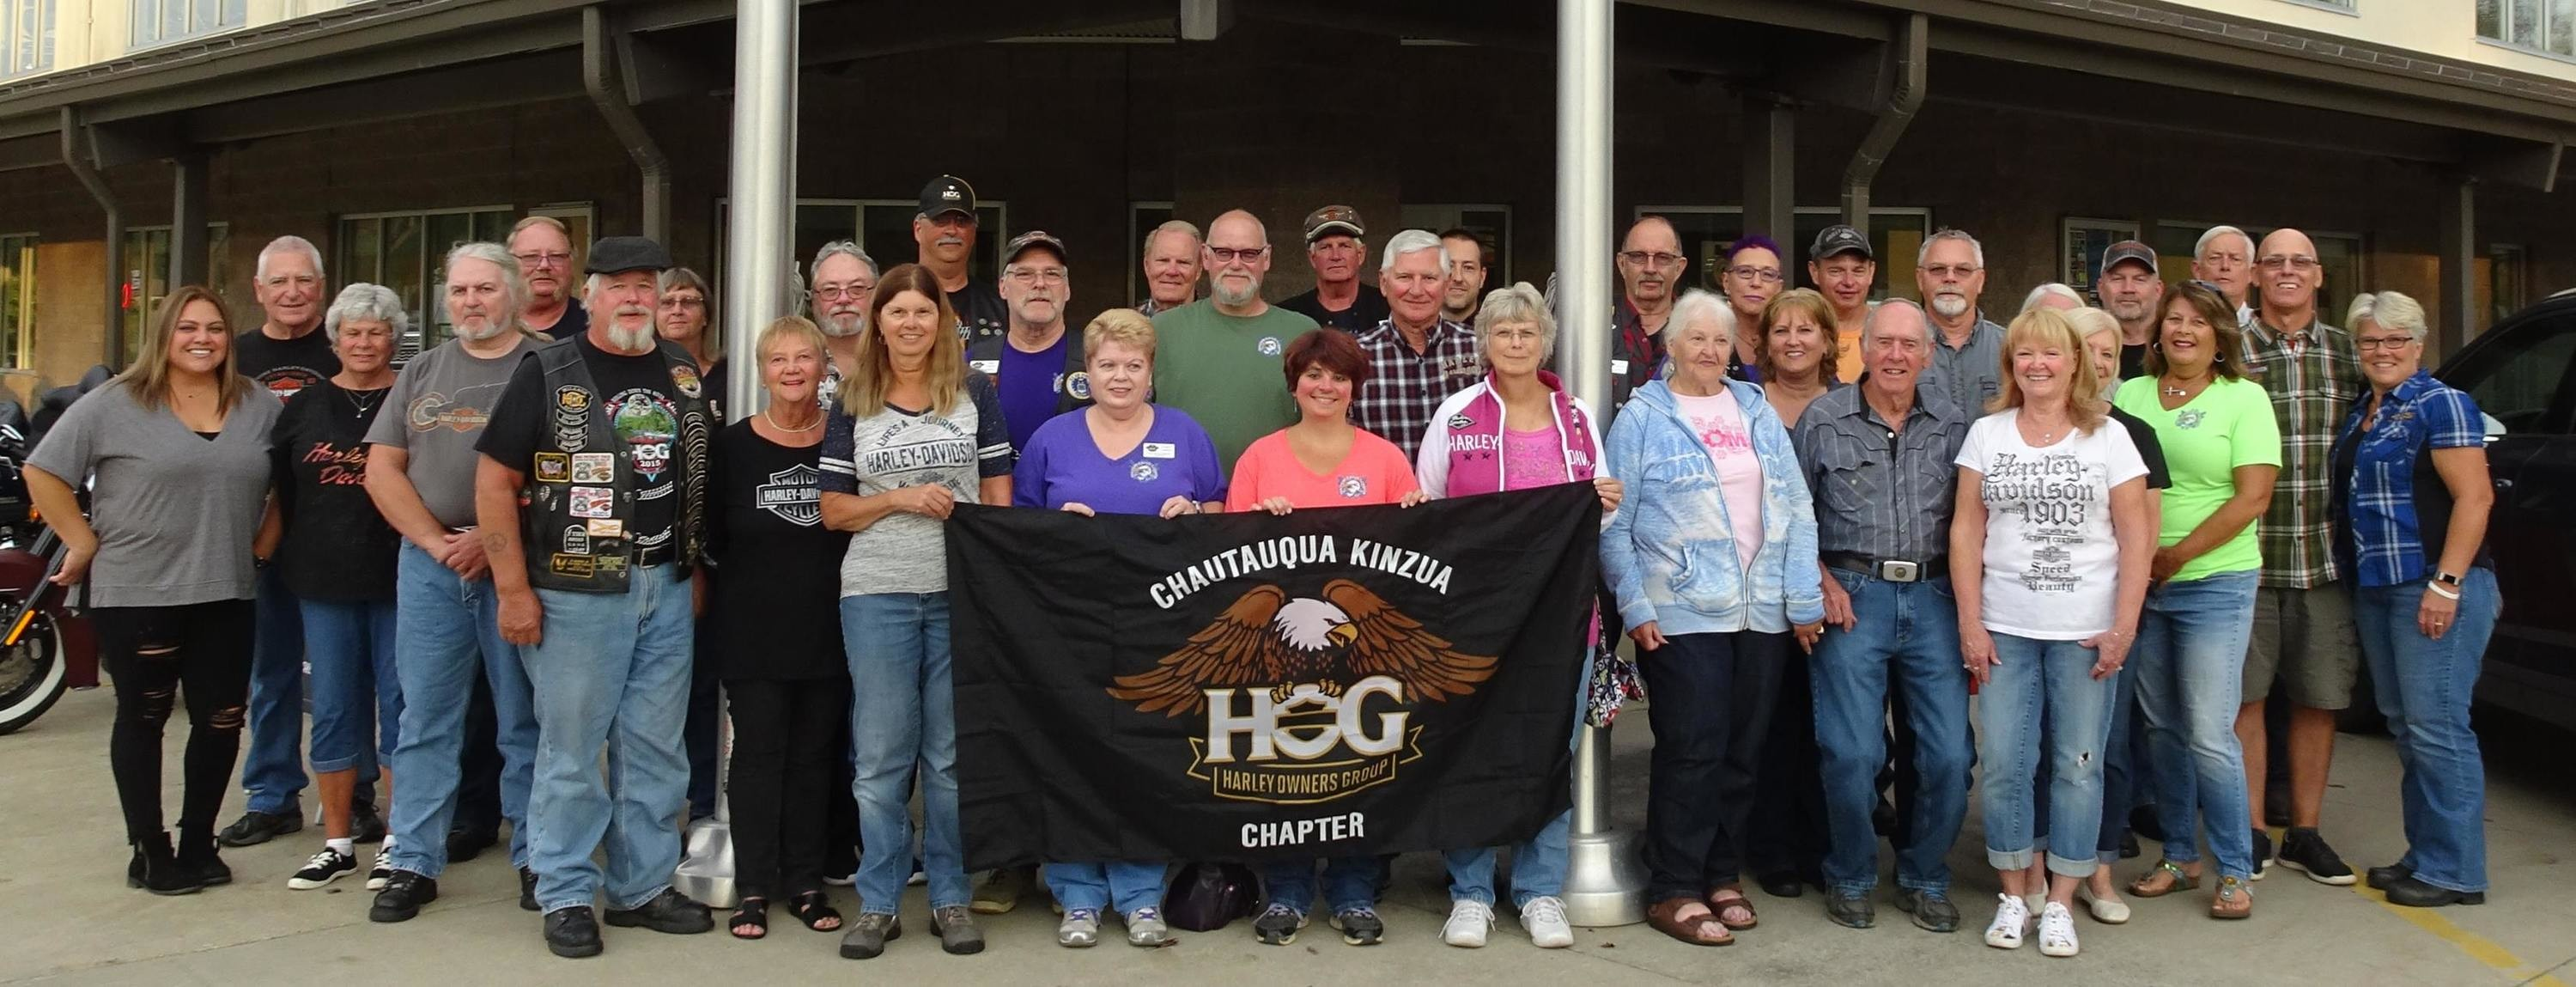 Chautauqua-Kinzua Harley Owners Group®